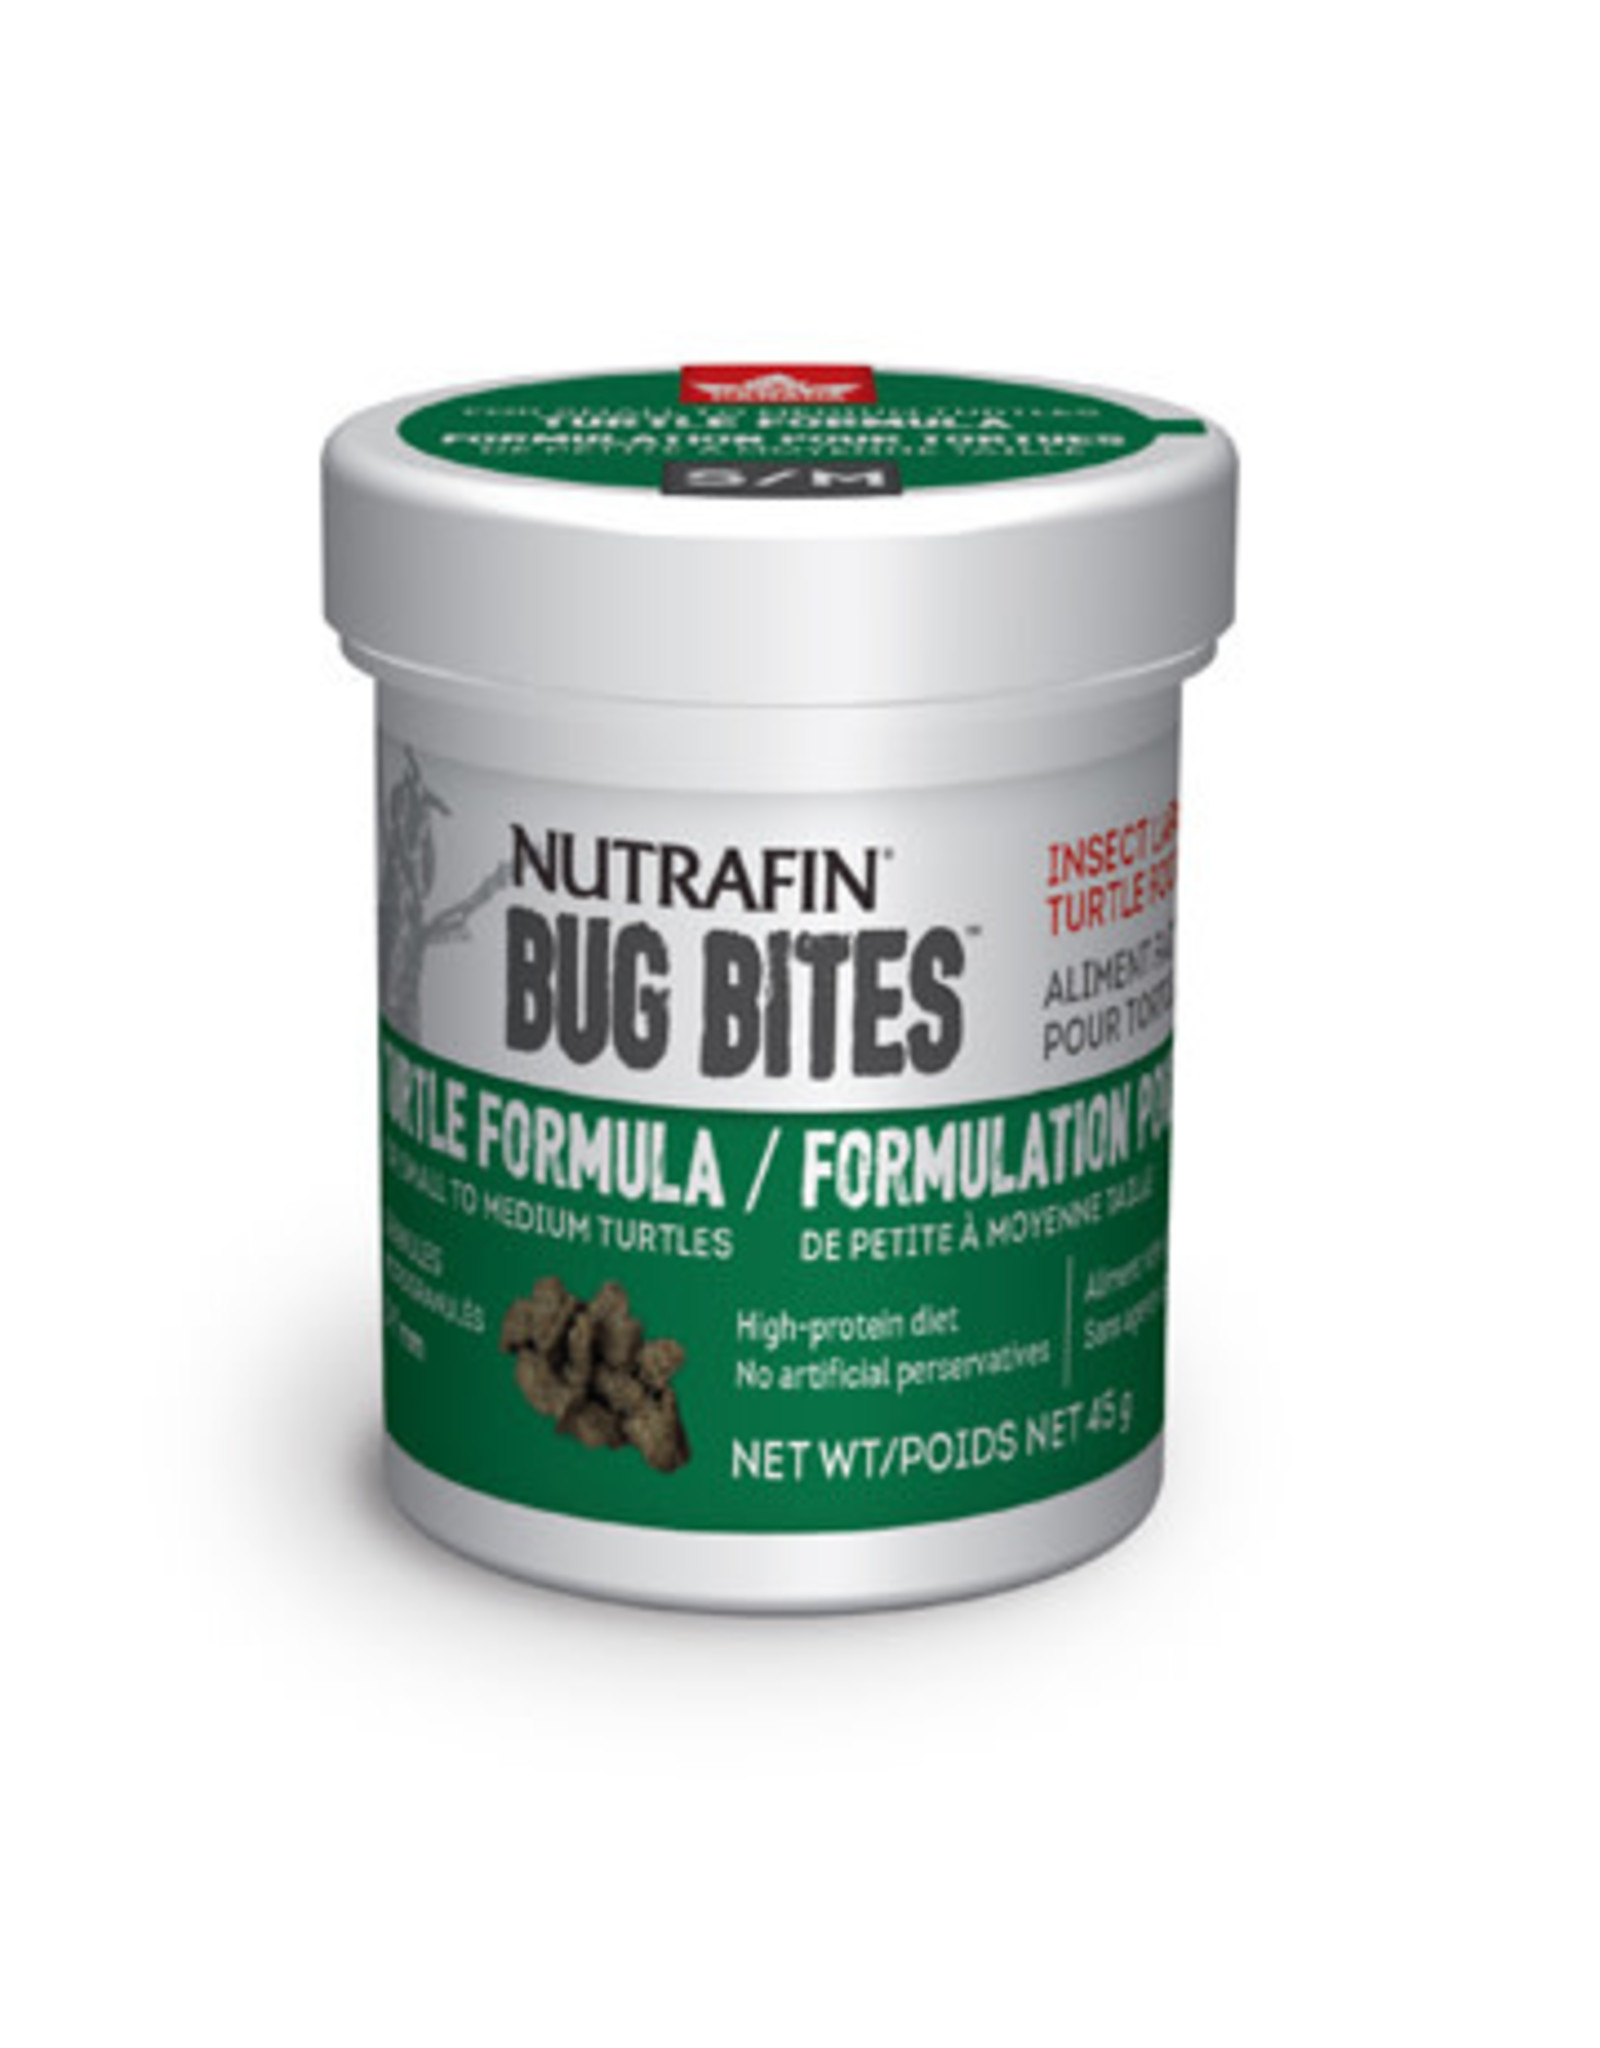 Nutrafin Bug Bites Turtle Formula Small to Medium Turtles 5-7mm - 45g (1.6oz)